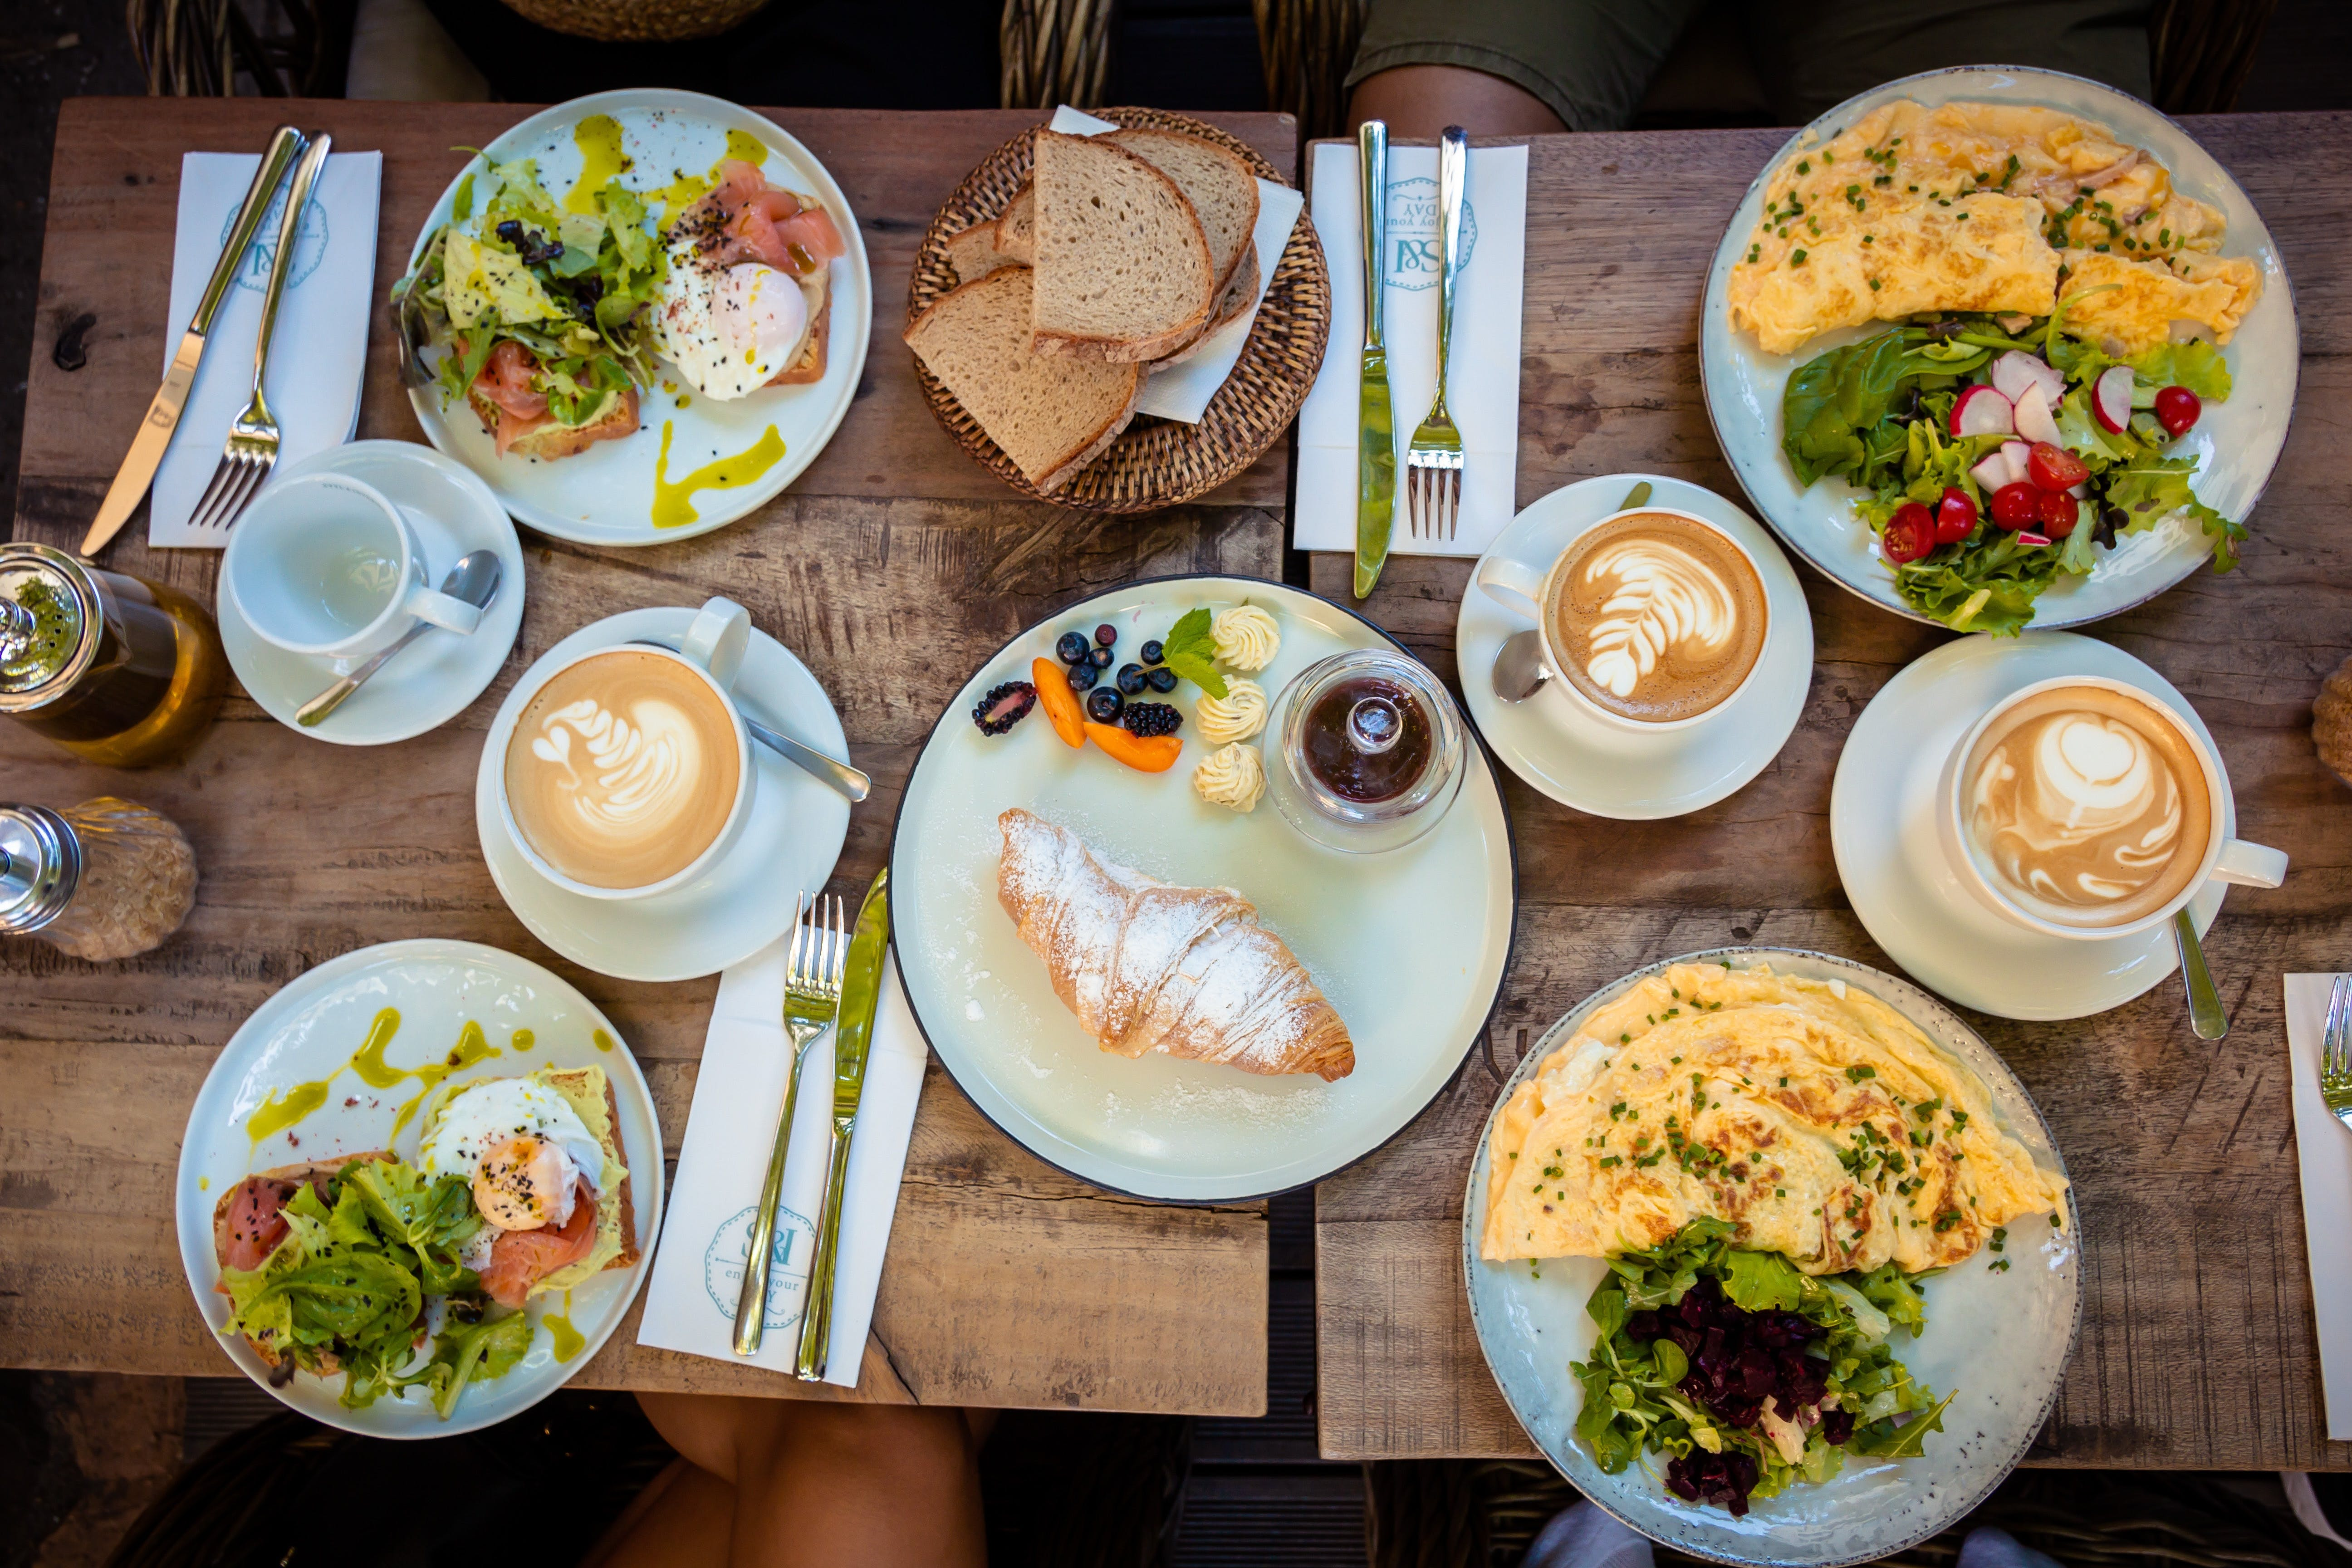 Big breakfast spread, laid out on a table